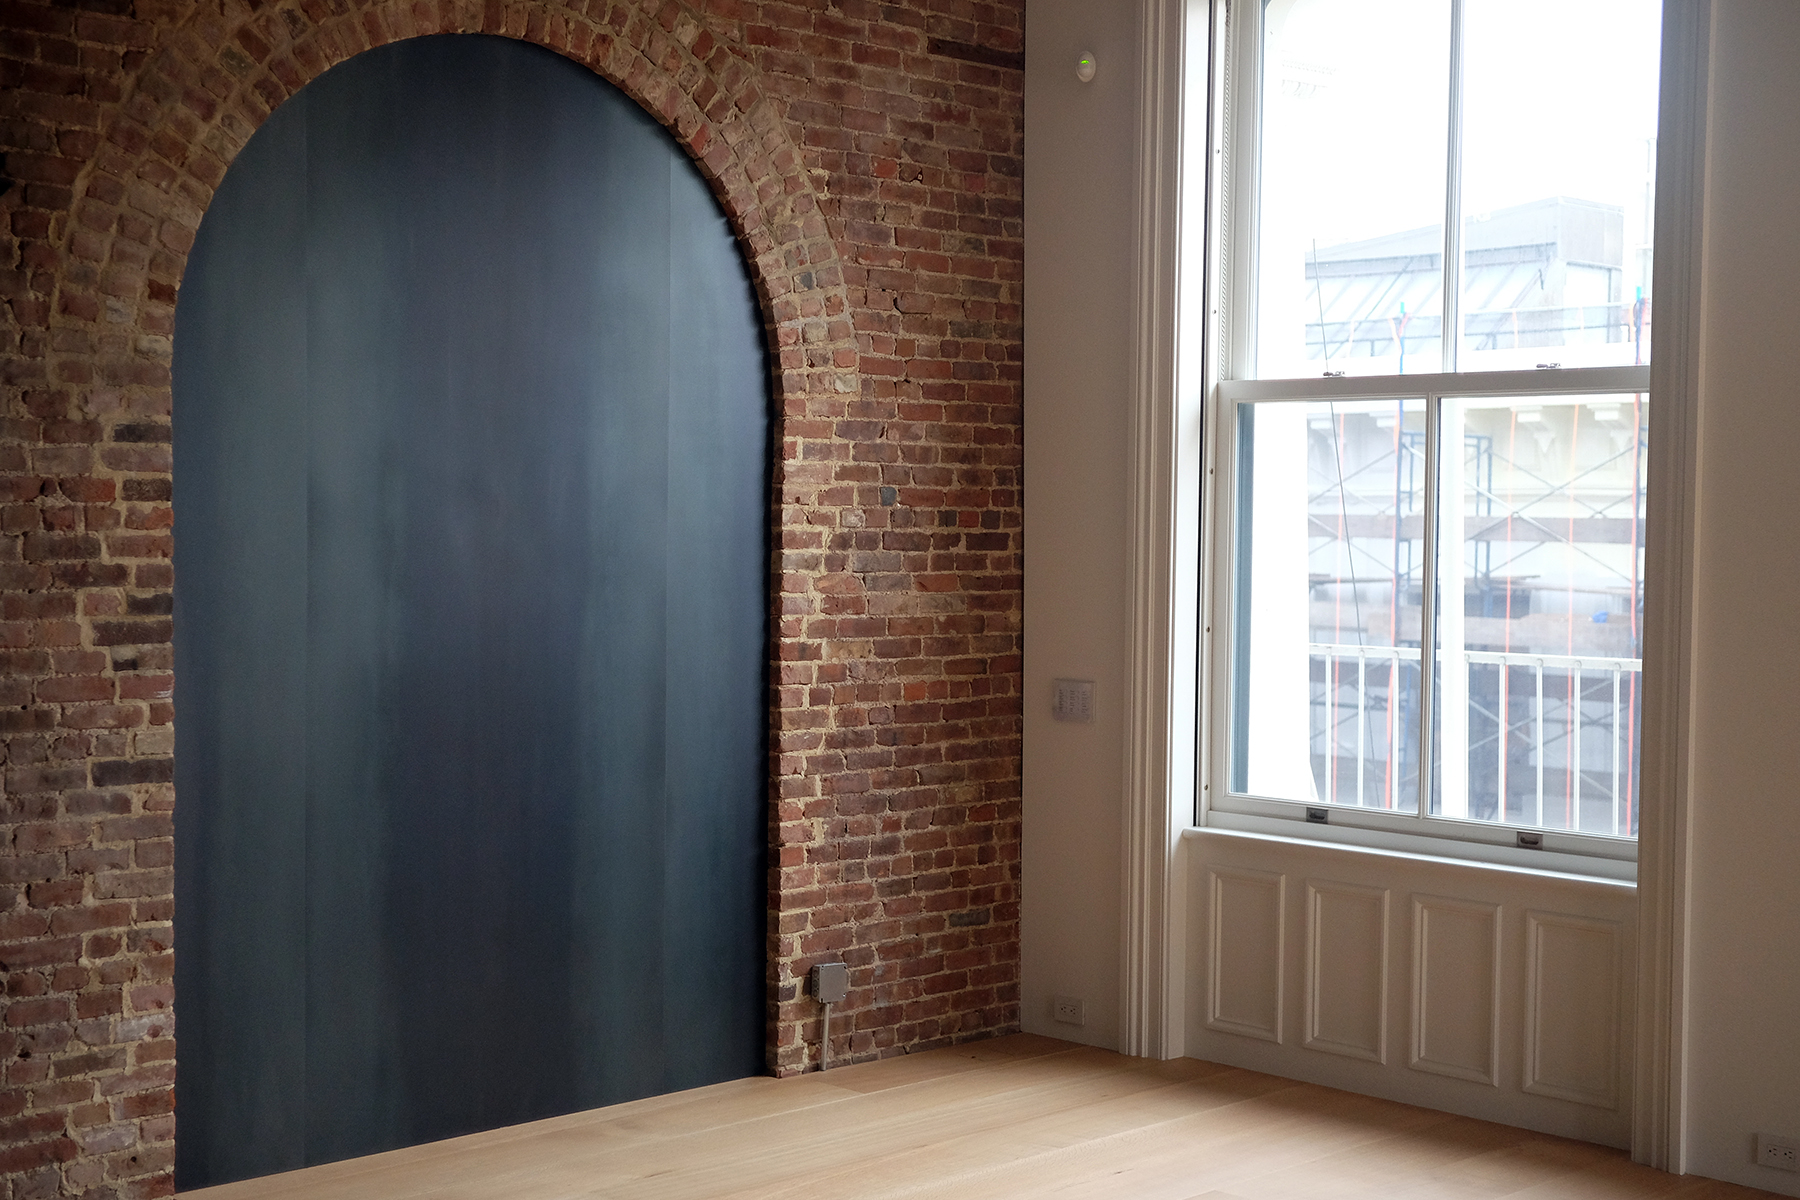 In this converted brush factory loft clear lacquered steel fills the archway in a brick wall...